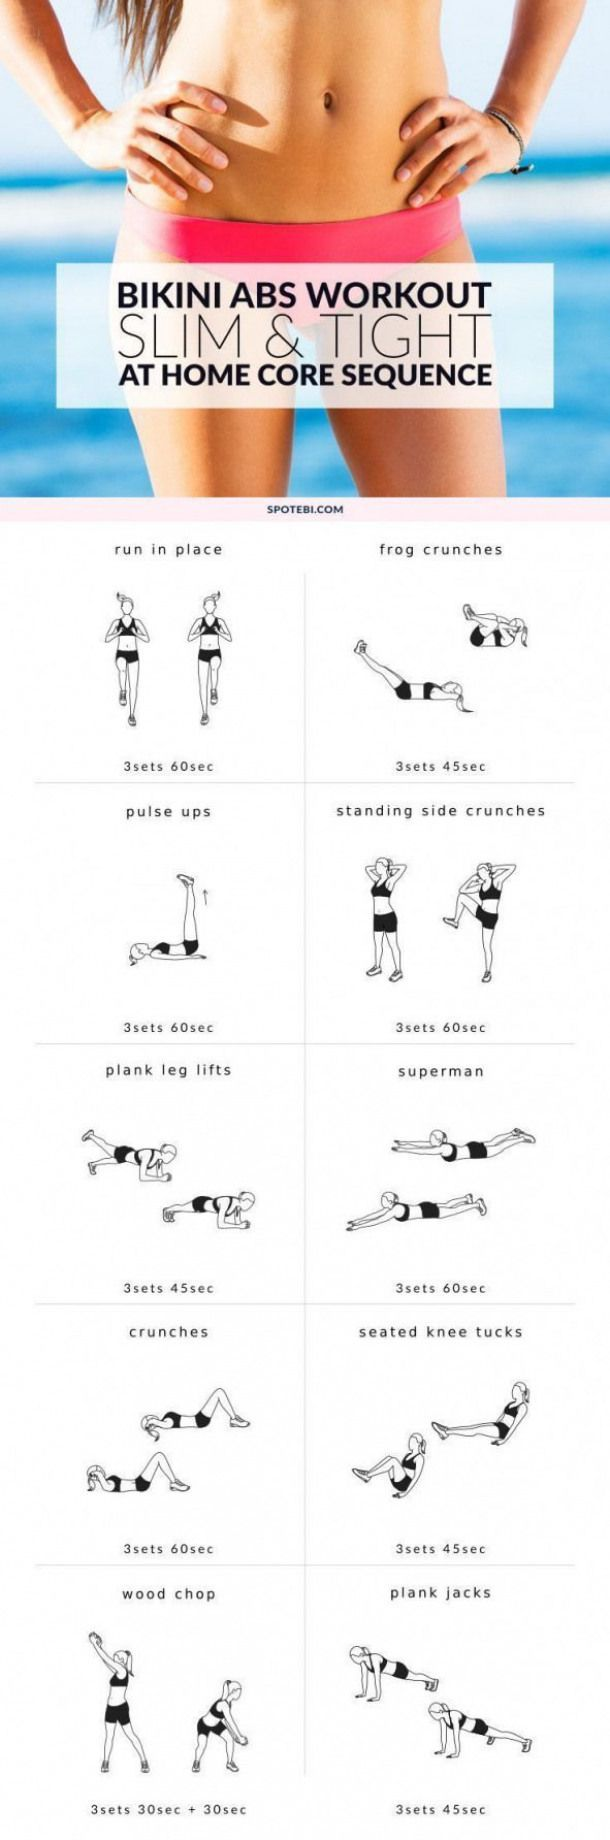 Cinch your entire core and get your tummy slim and tight with this at home bikini abs workout. Complete this sequence once a week and maintain a healthy diet to #looseweight #sideabworkouts Cinch your entire core and get your tummy slim and tight with this at home bikini abs workout. Complete this sequence once a week and maintain a healthy diet to #looseweight #sideabworkouts